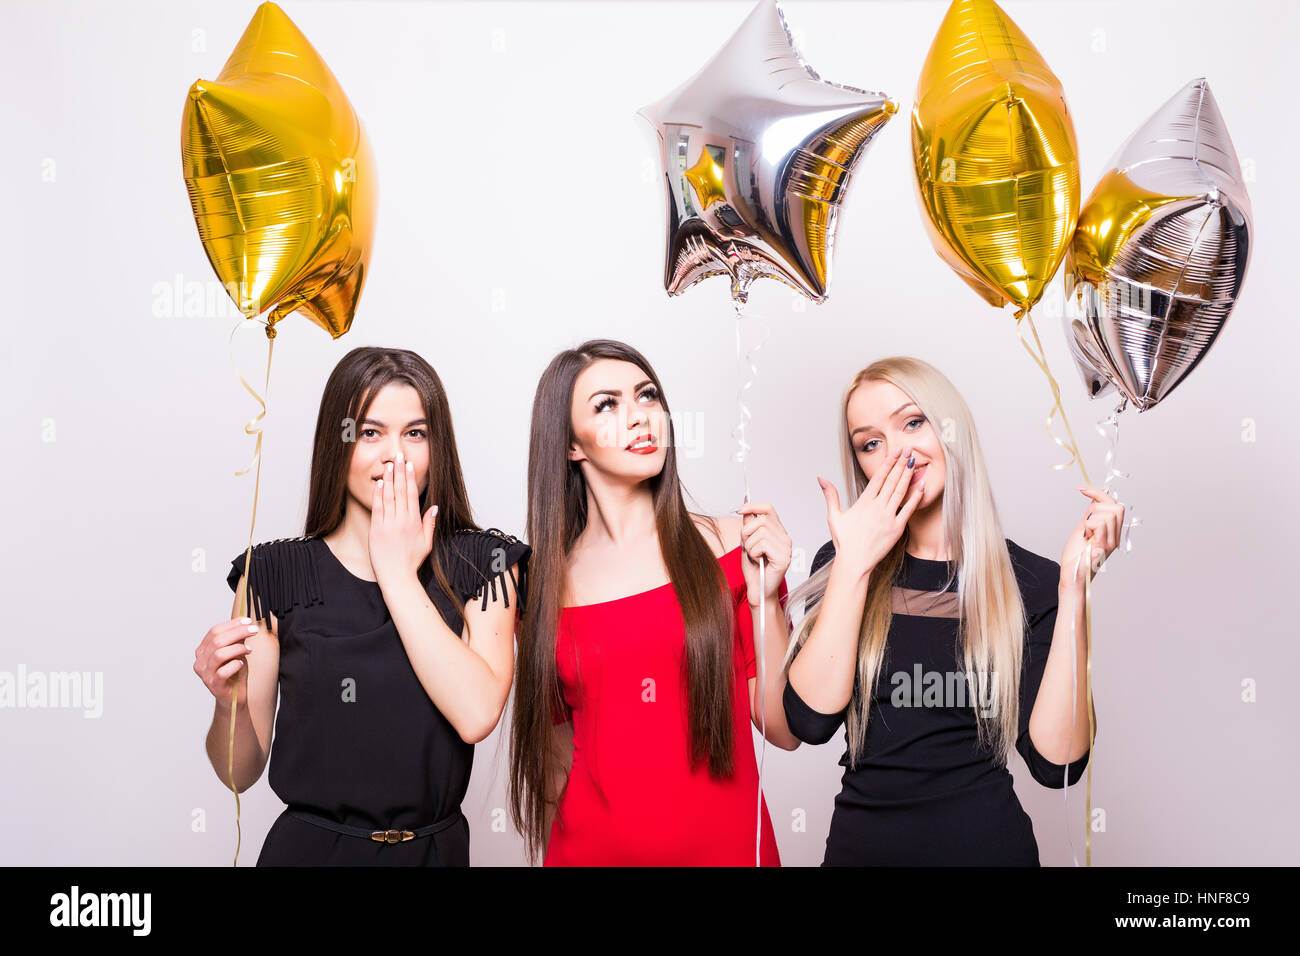 783a69e9671e Three lovely young women standing and holding star shaped balloons over  white background - Stock Image